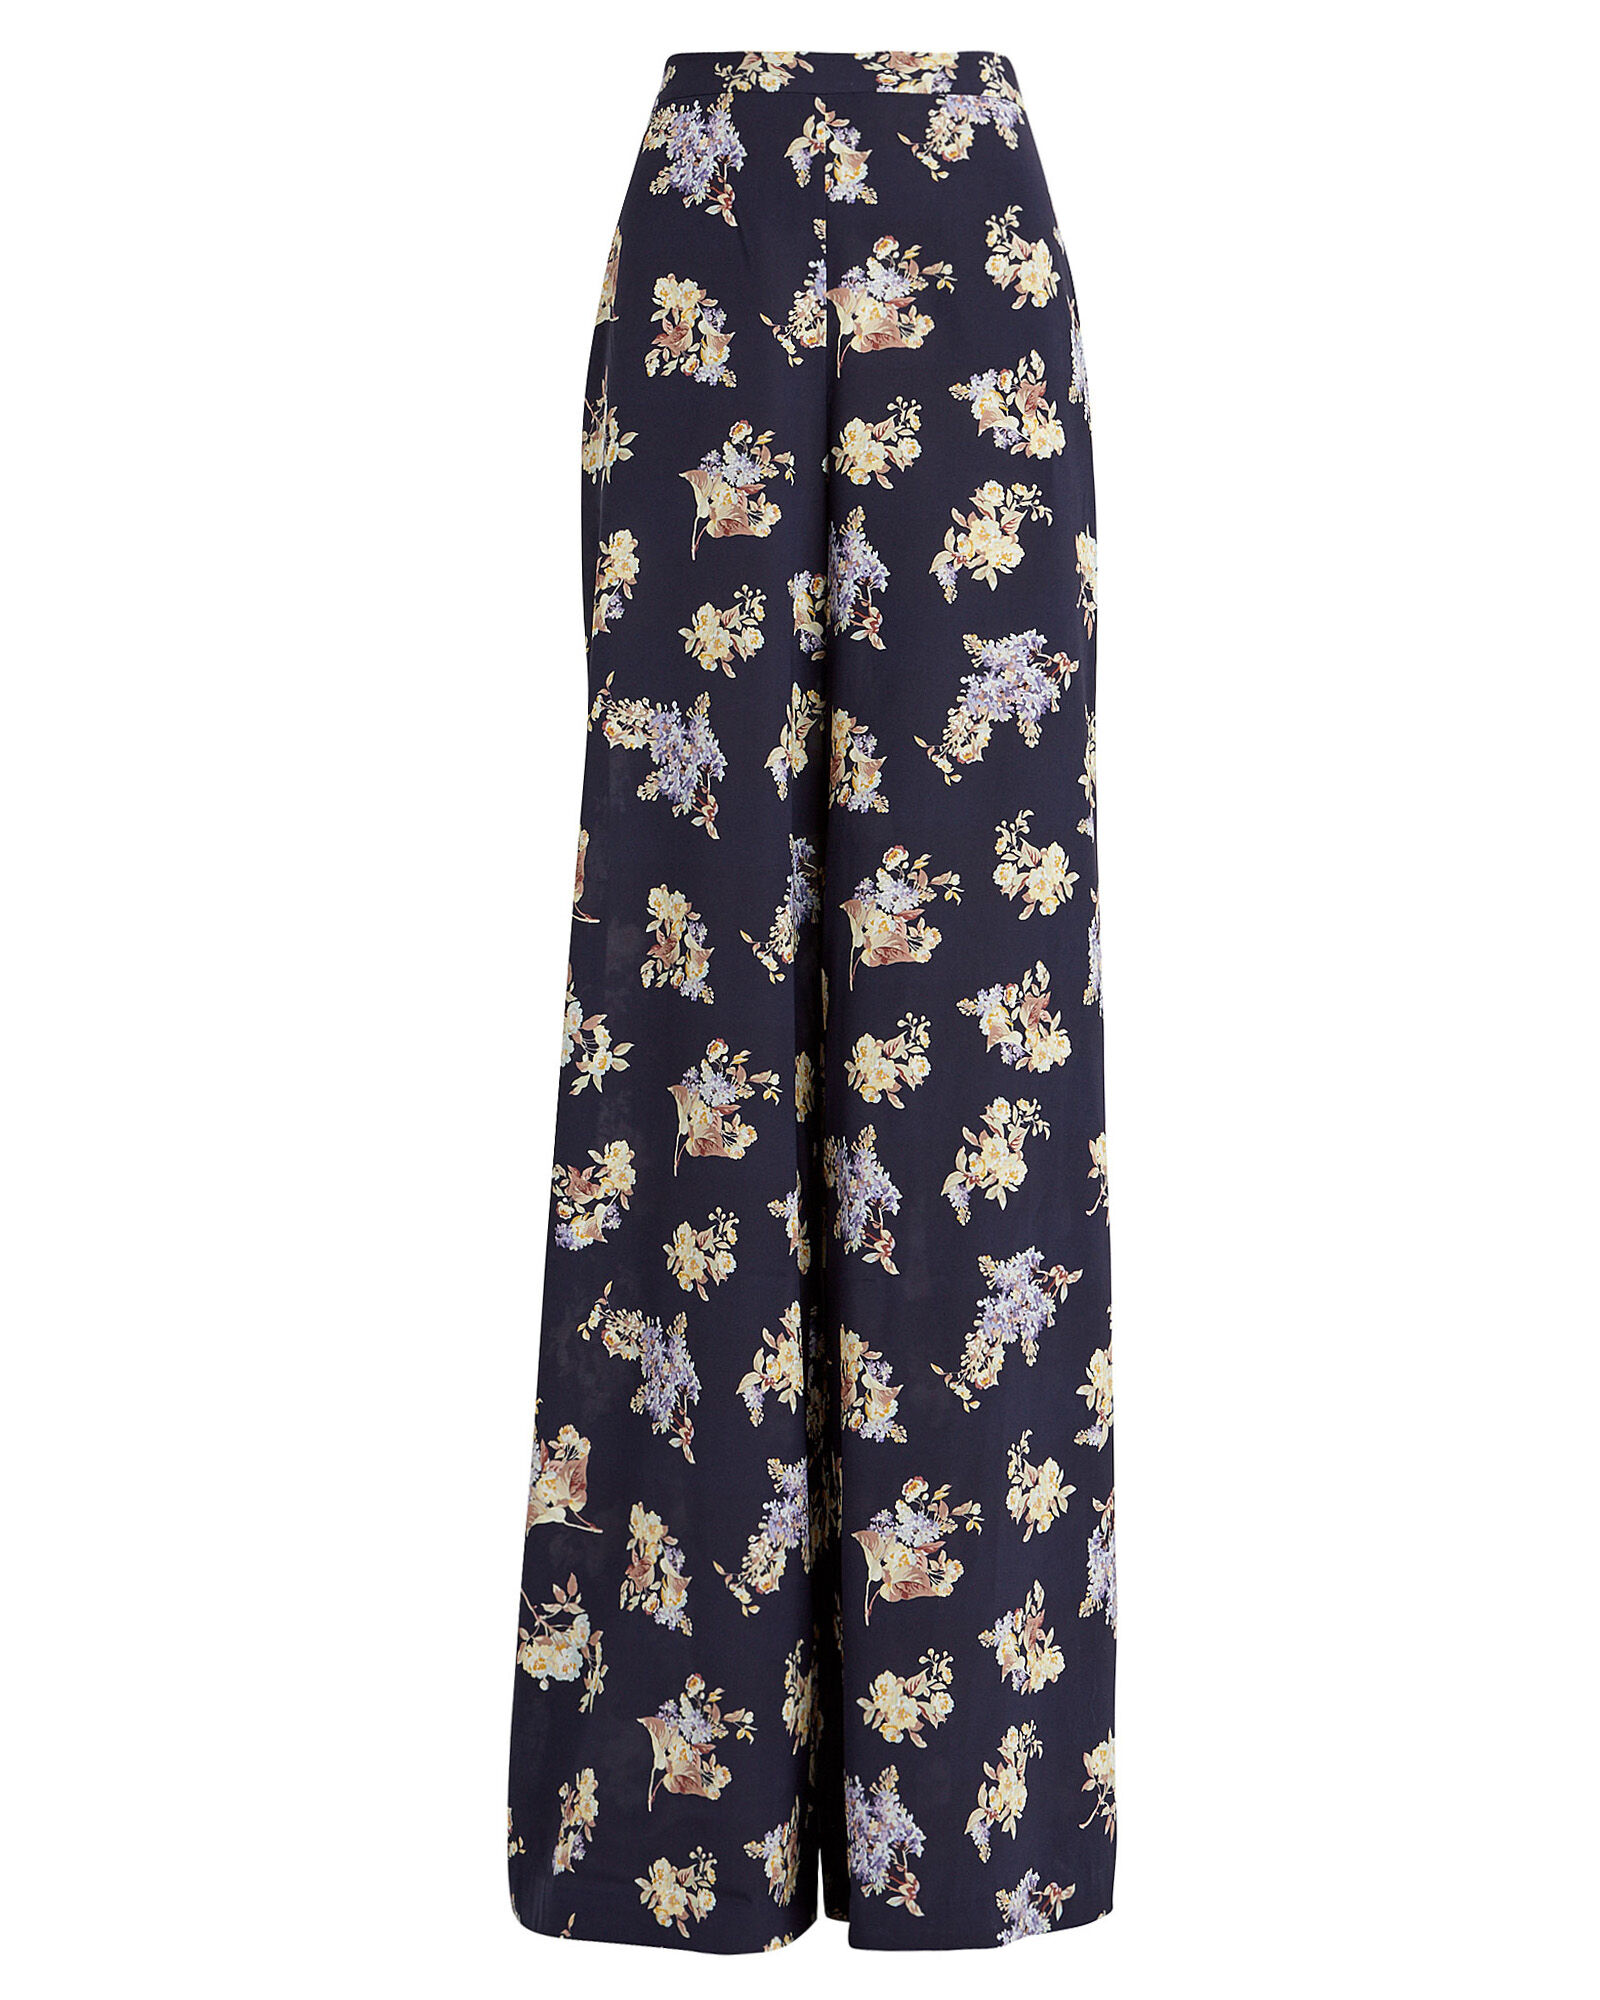 Sabotage Wide-Leg Floral Trousers, MULTI, hi-res